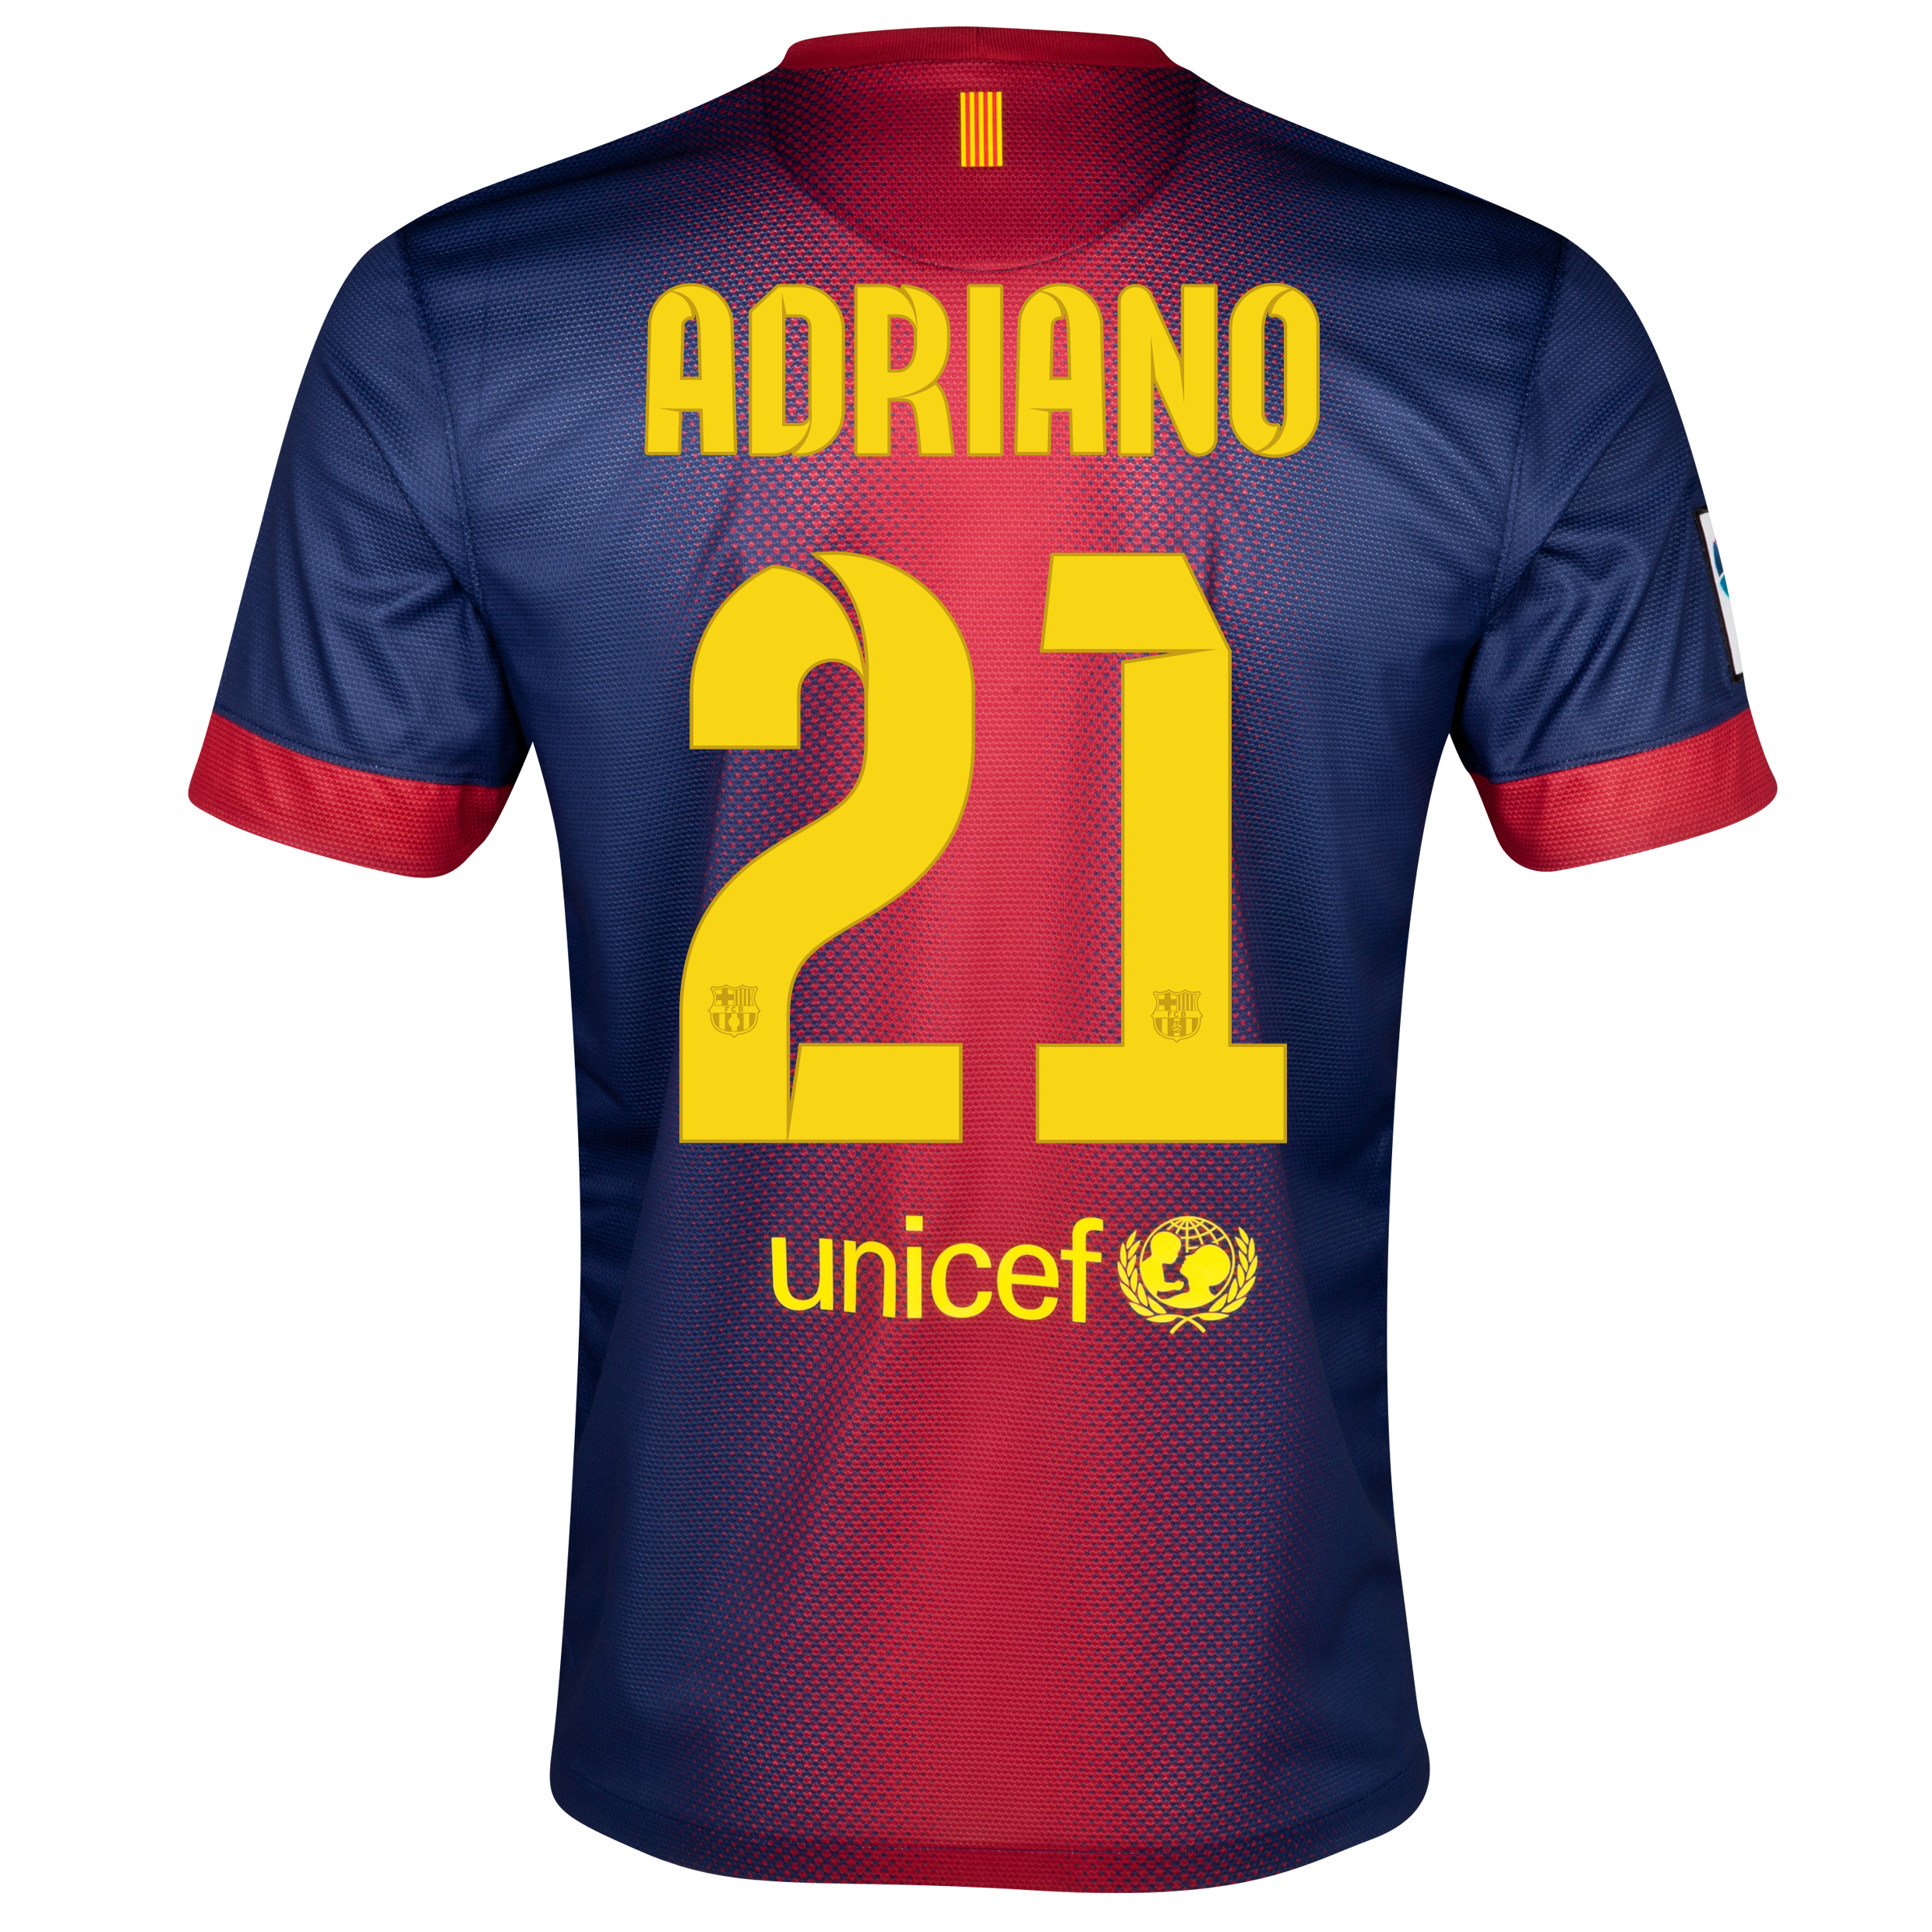 Barcelona Home Shirt 2012/13 with Adriano 21 printing